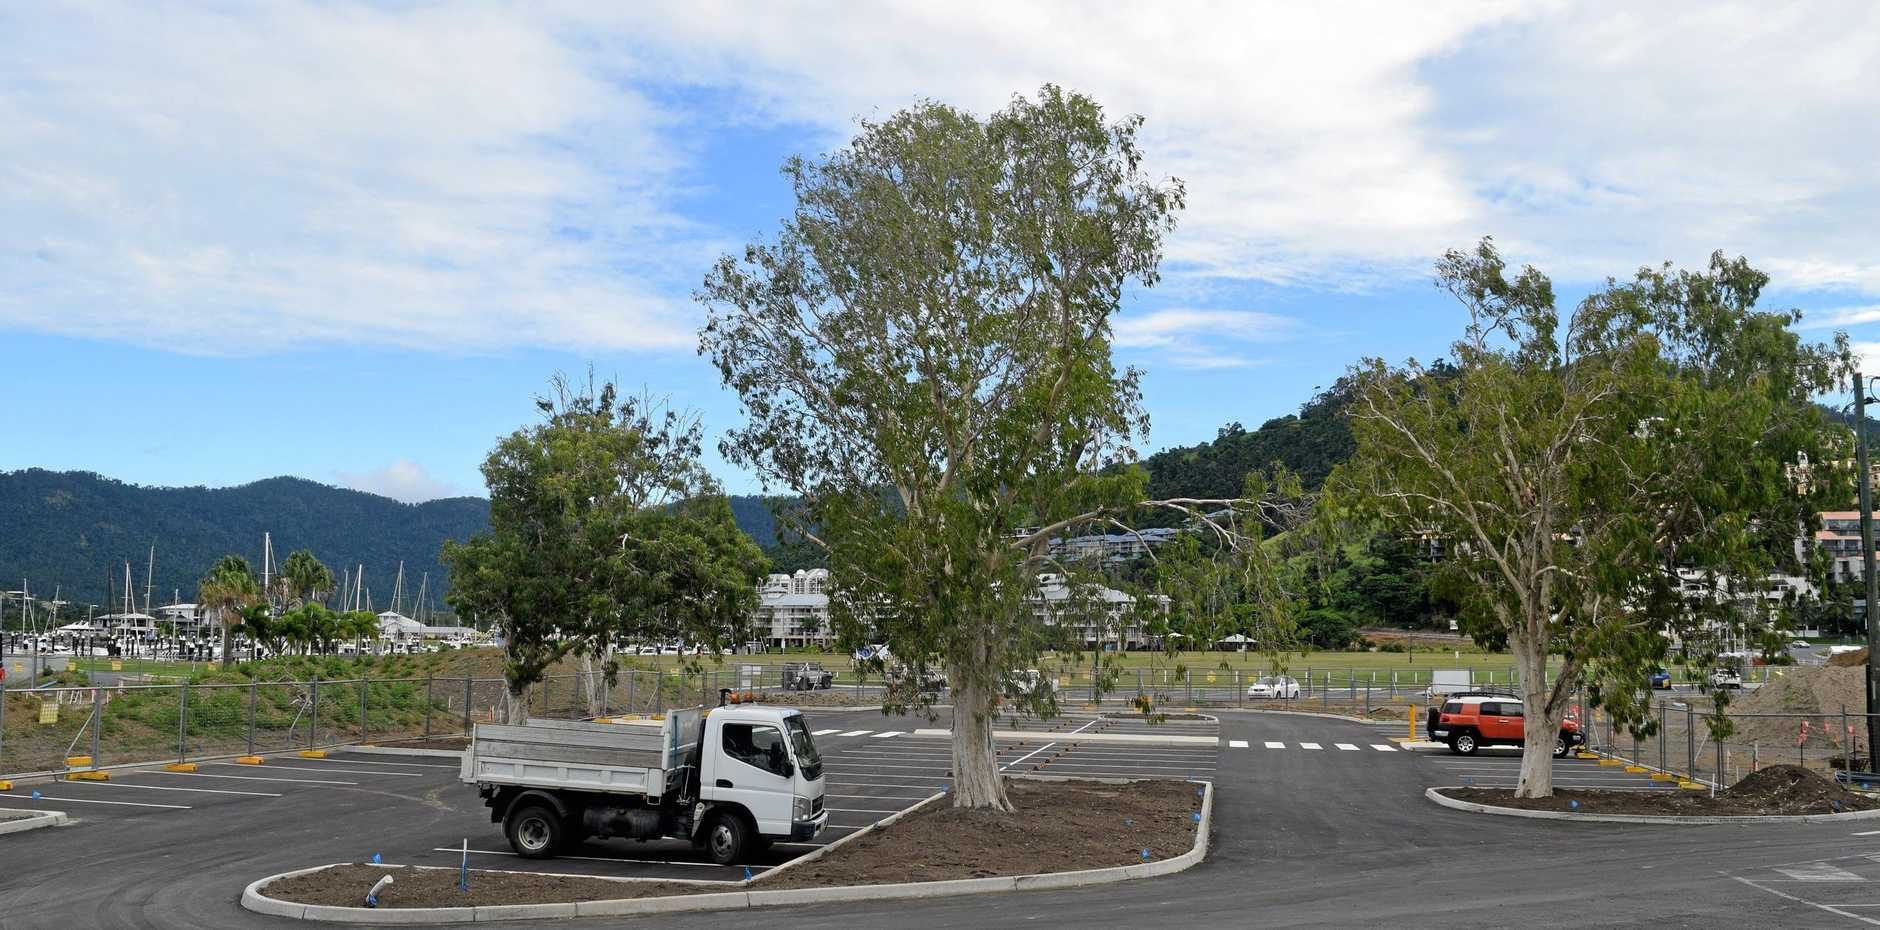 COME ON IN: The Airlie Beach foreshore car park has opened with 57 designated parking spots made available.